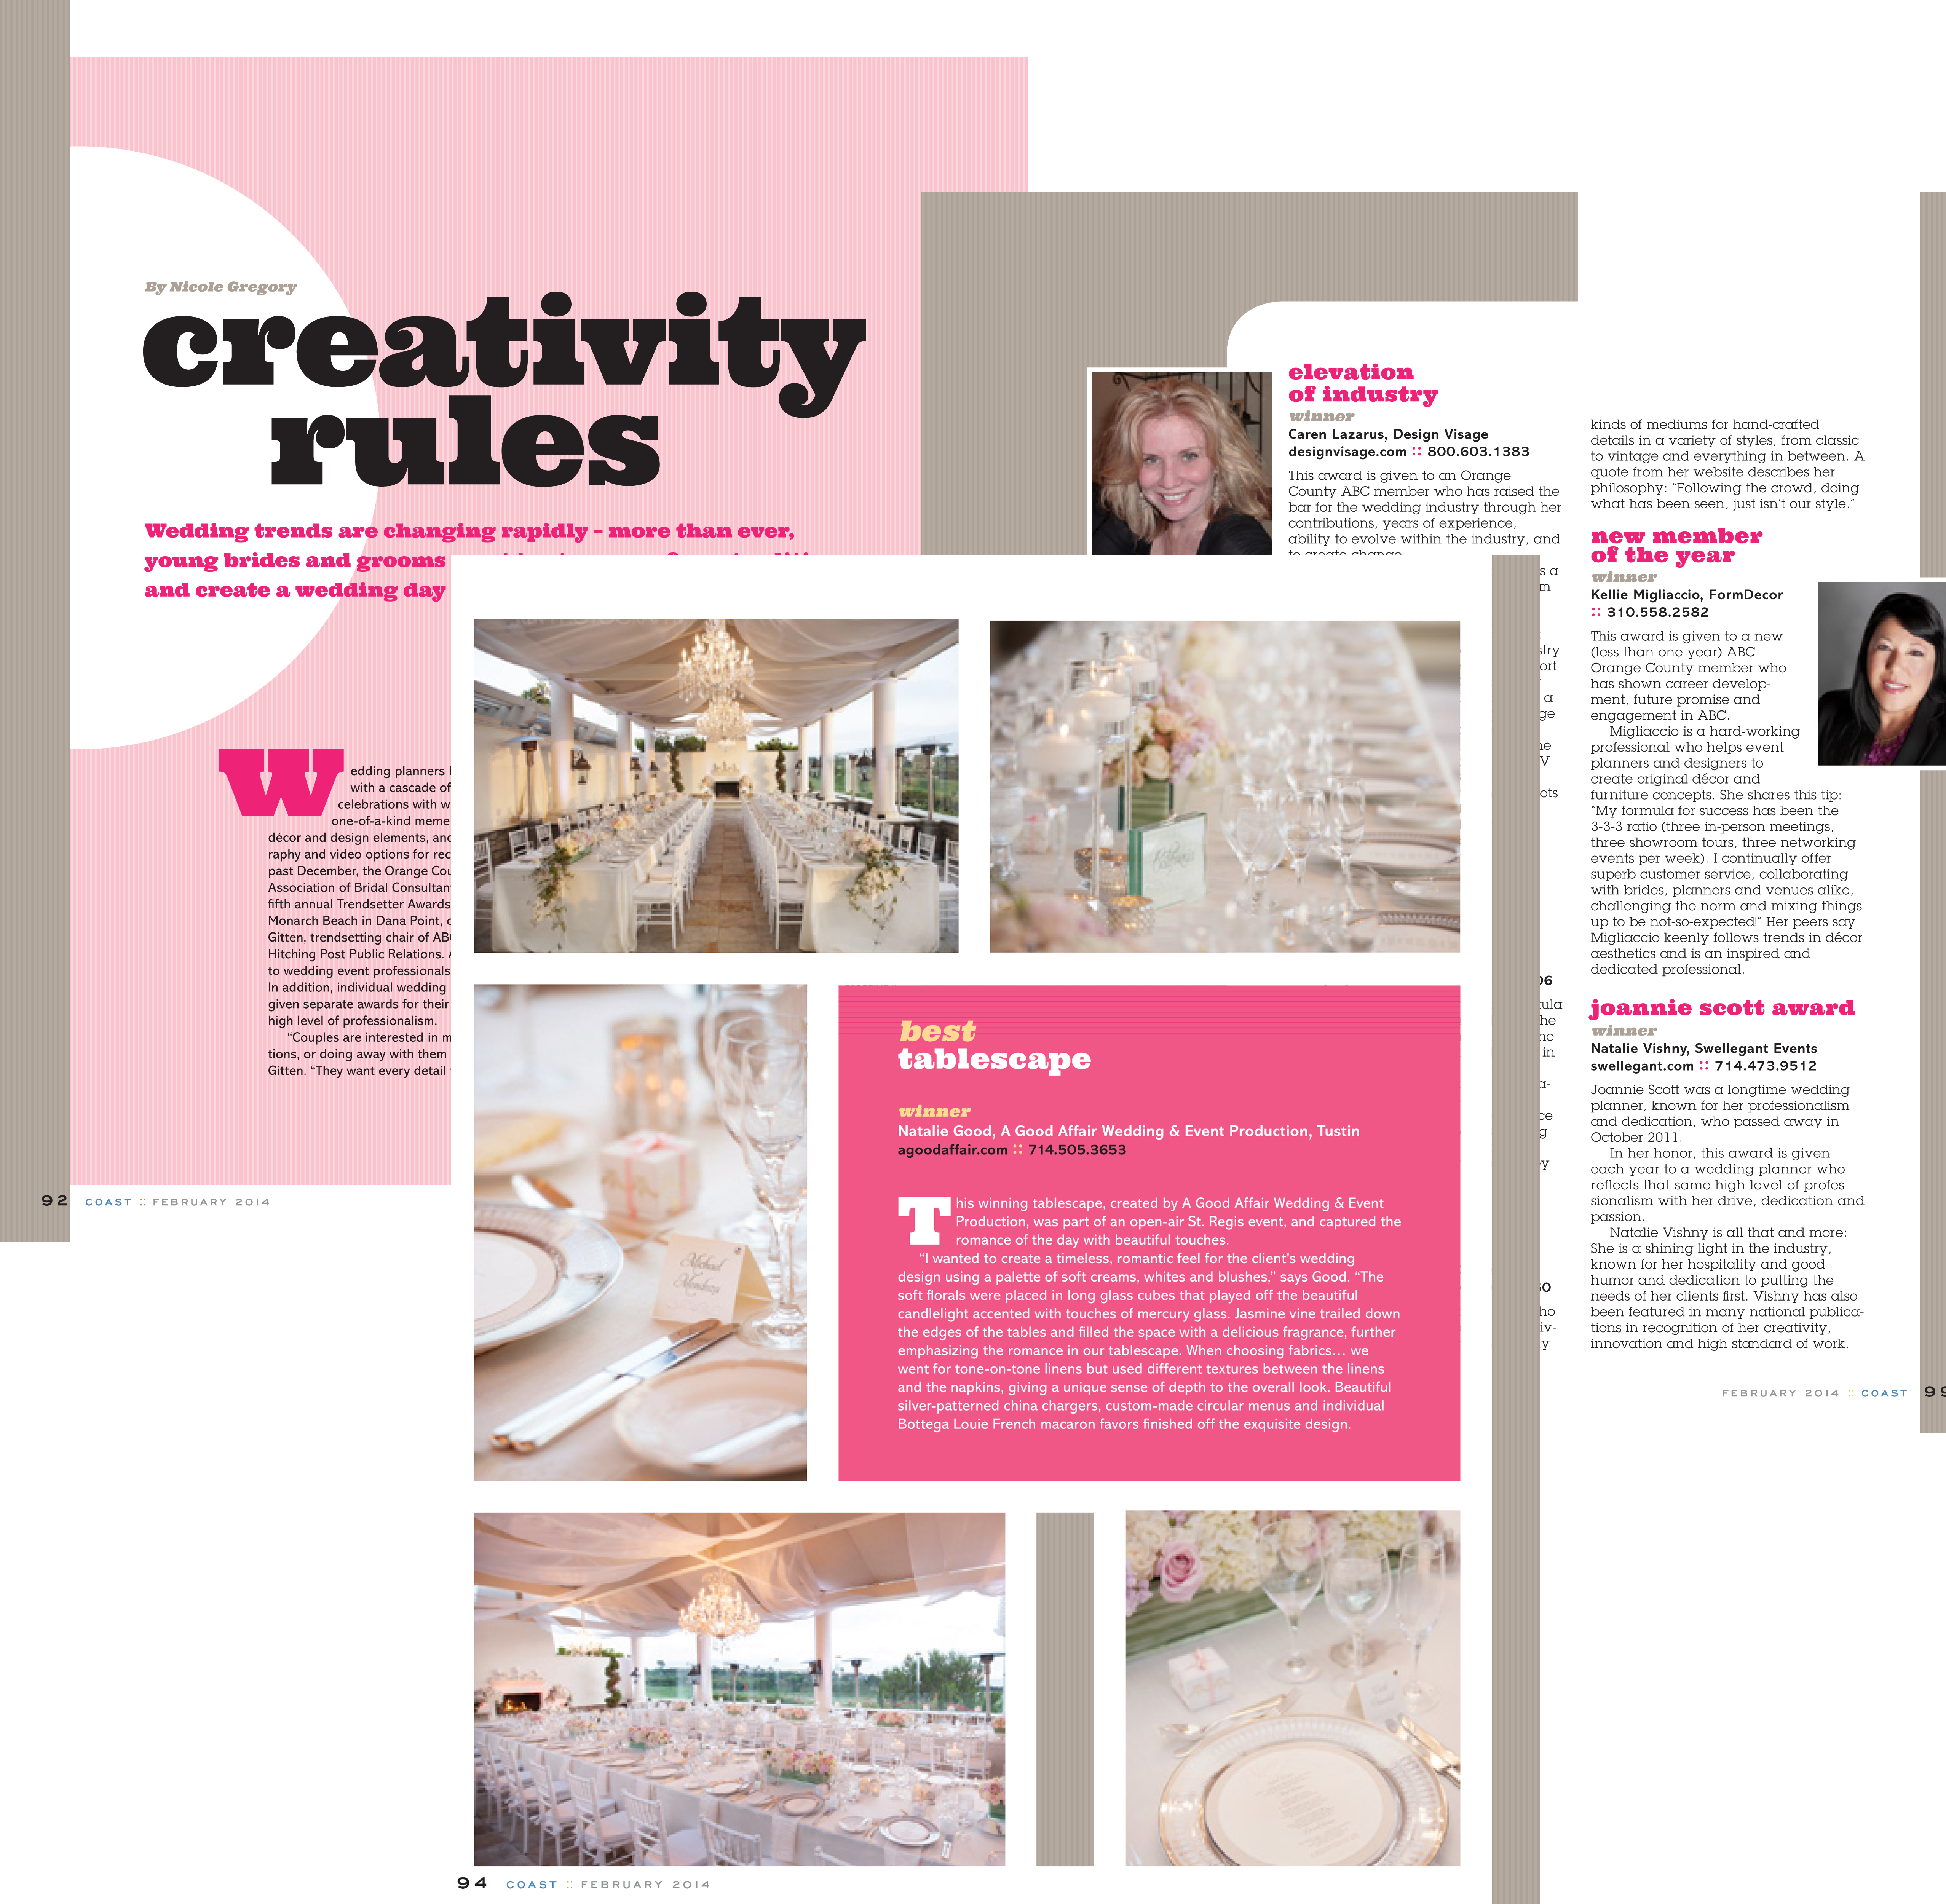 Coast Feb 2014 Trends, A Good Affair Wedding & Event Production